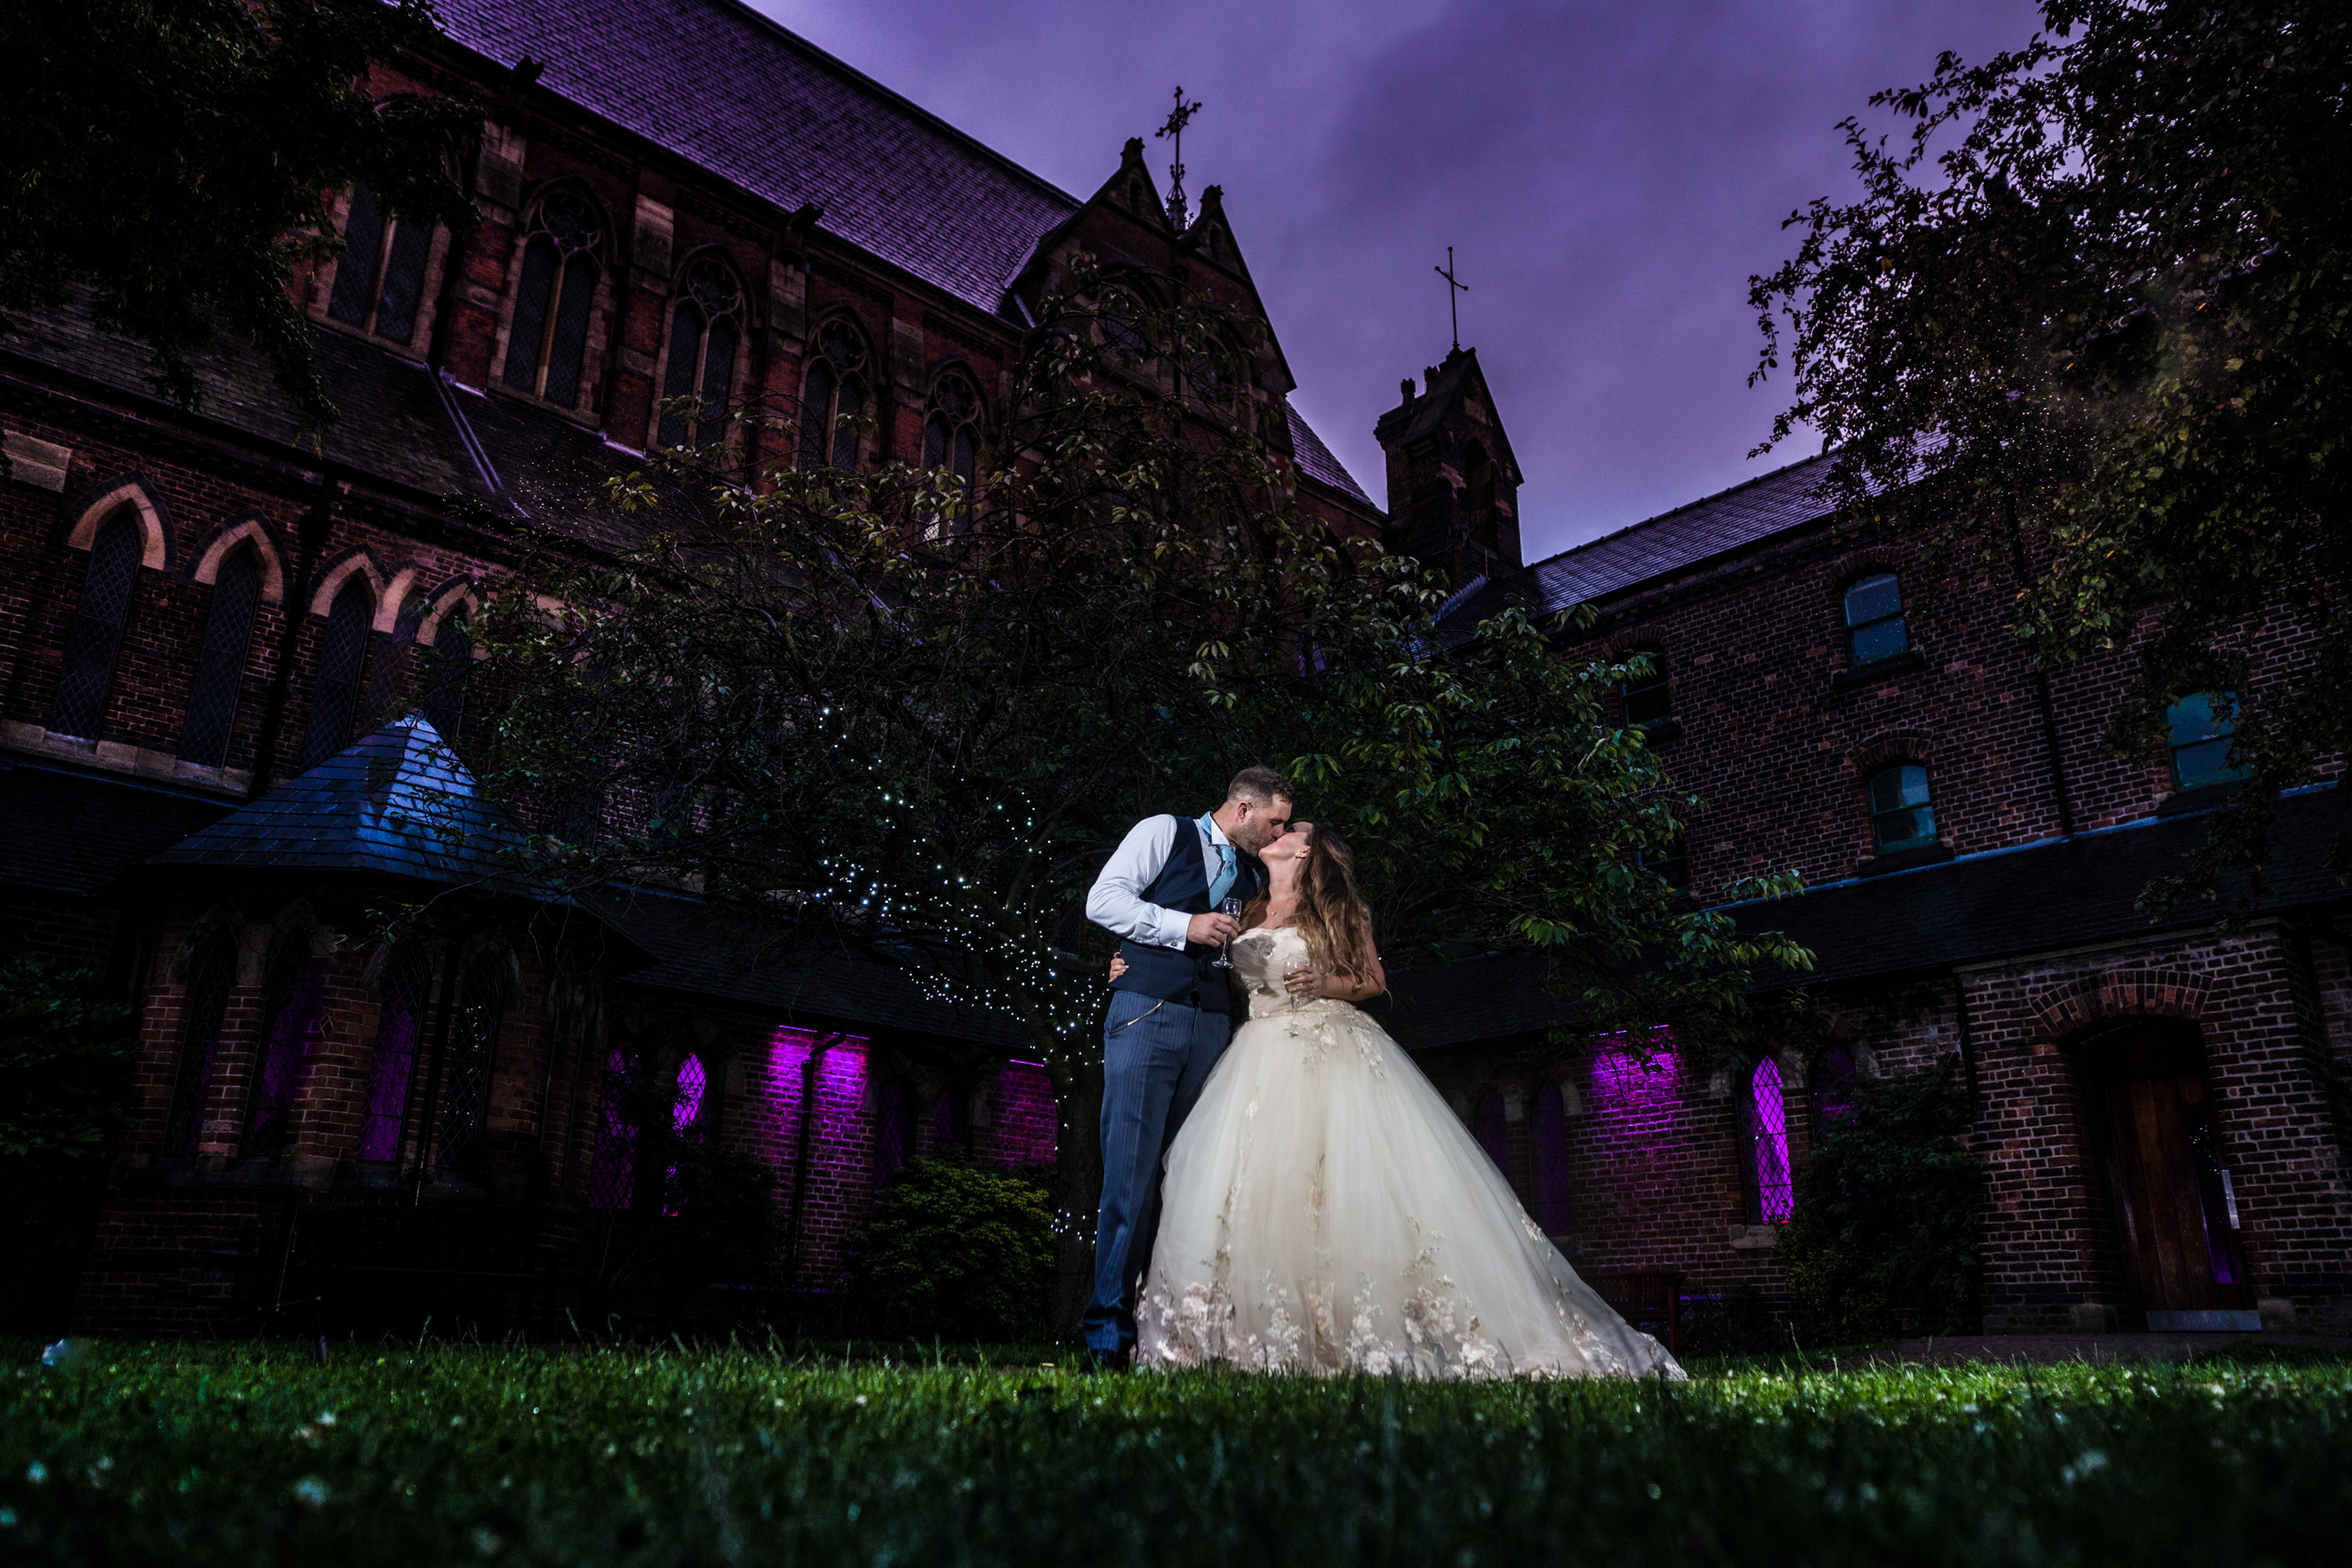 Lee and Anne Marie's wedding, Gorton Monastery, Manchester